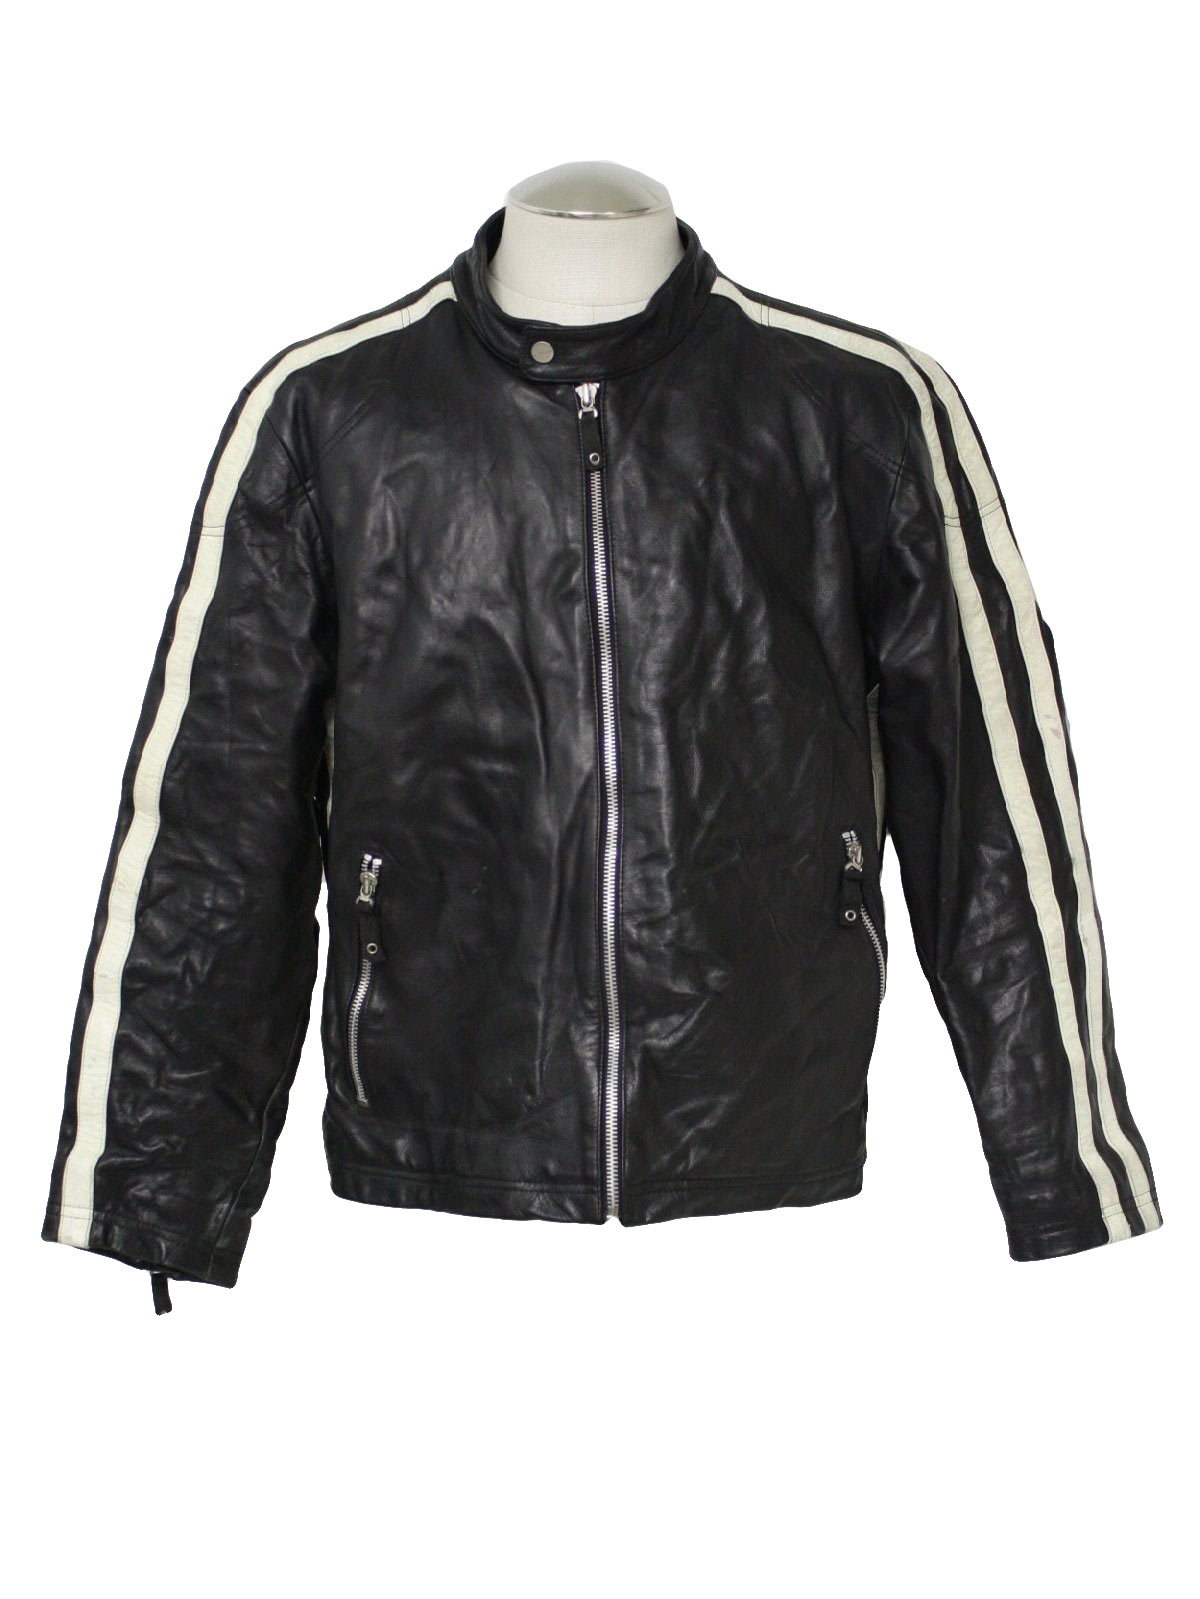 1980's Retro Leather Jacket: 80s -Wilson- Mens black and white leather